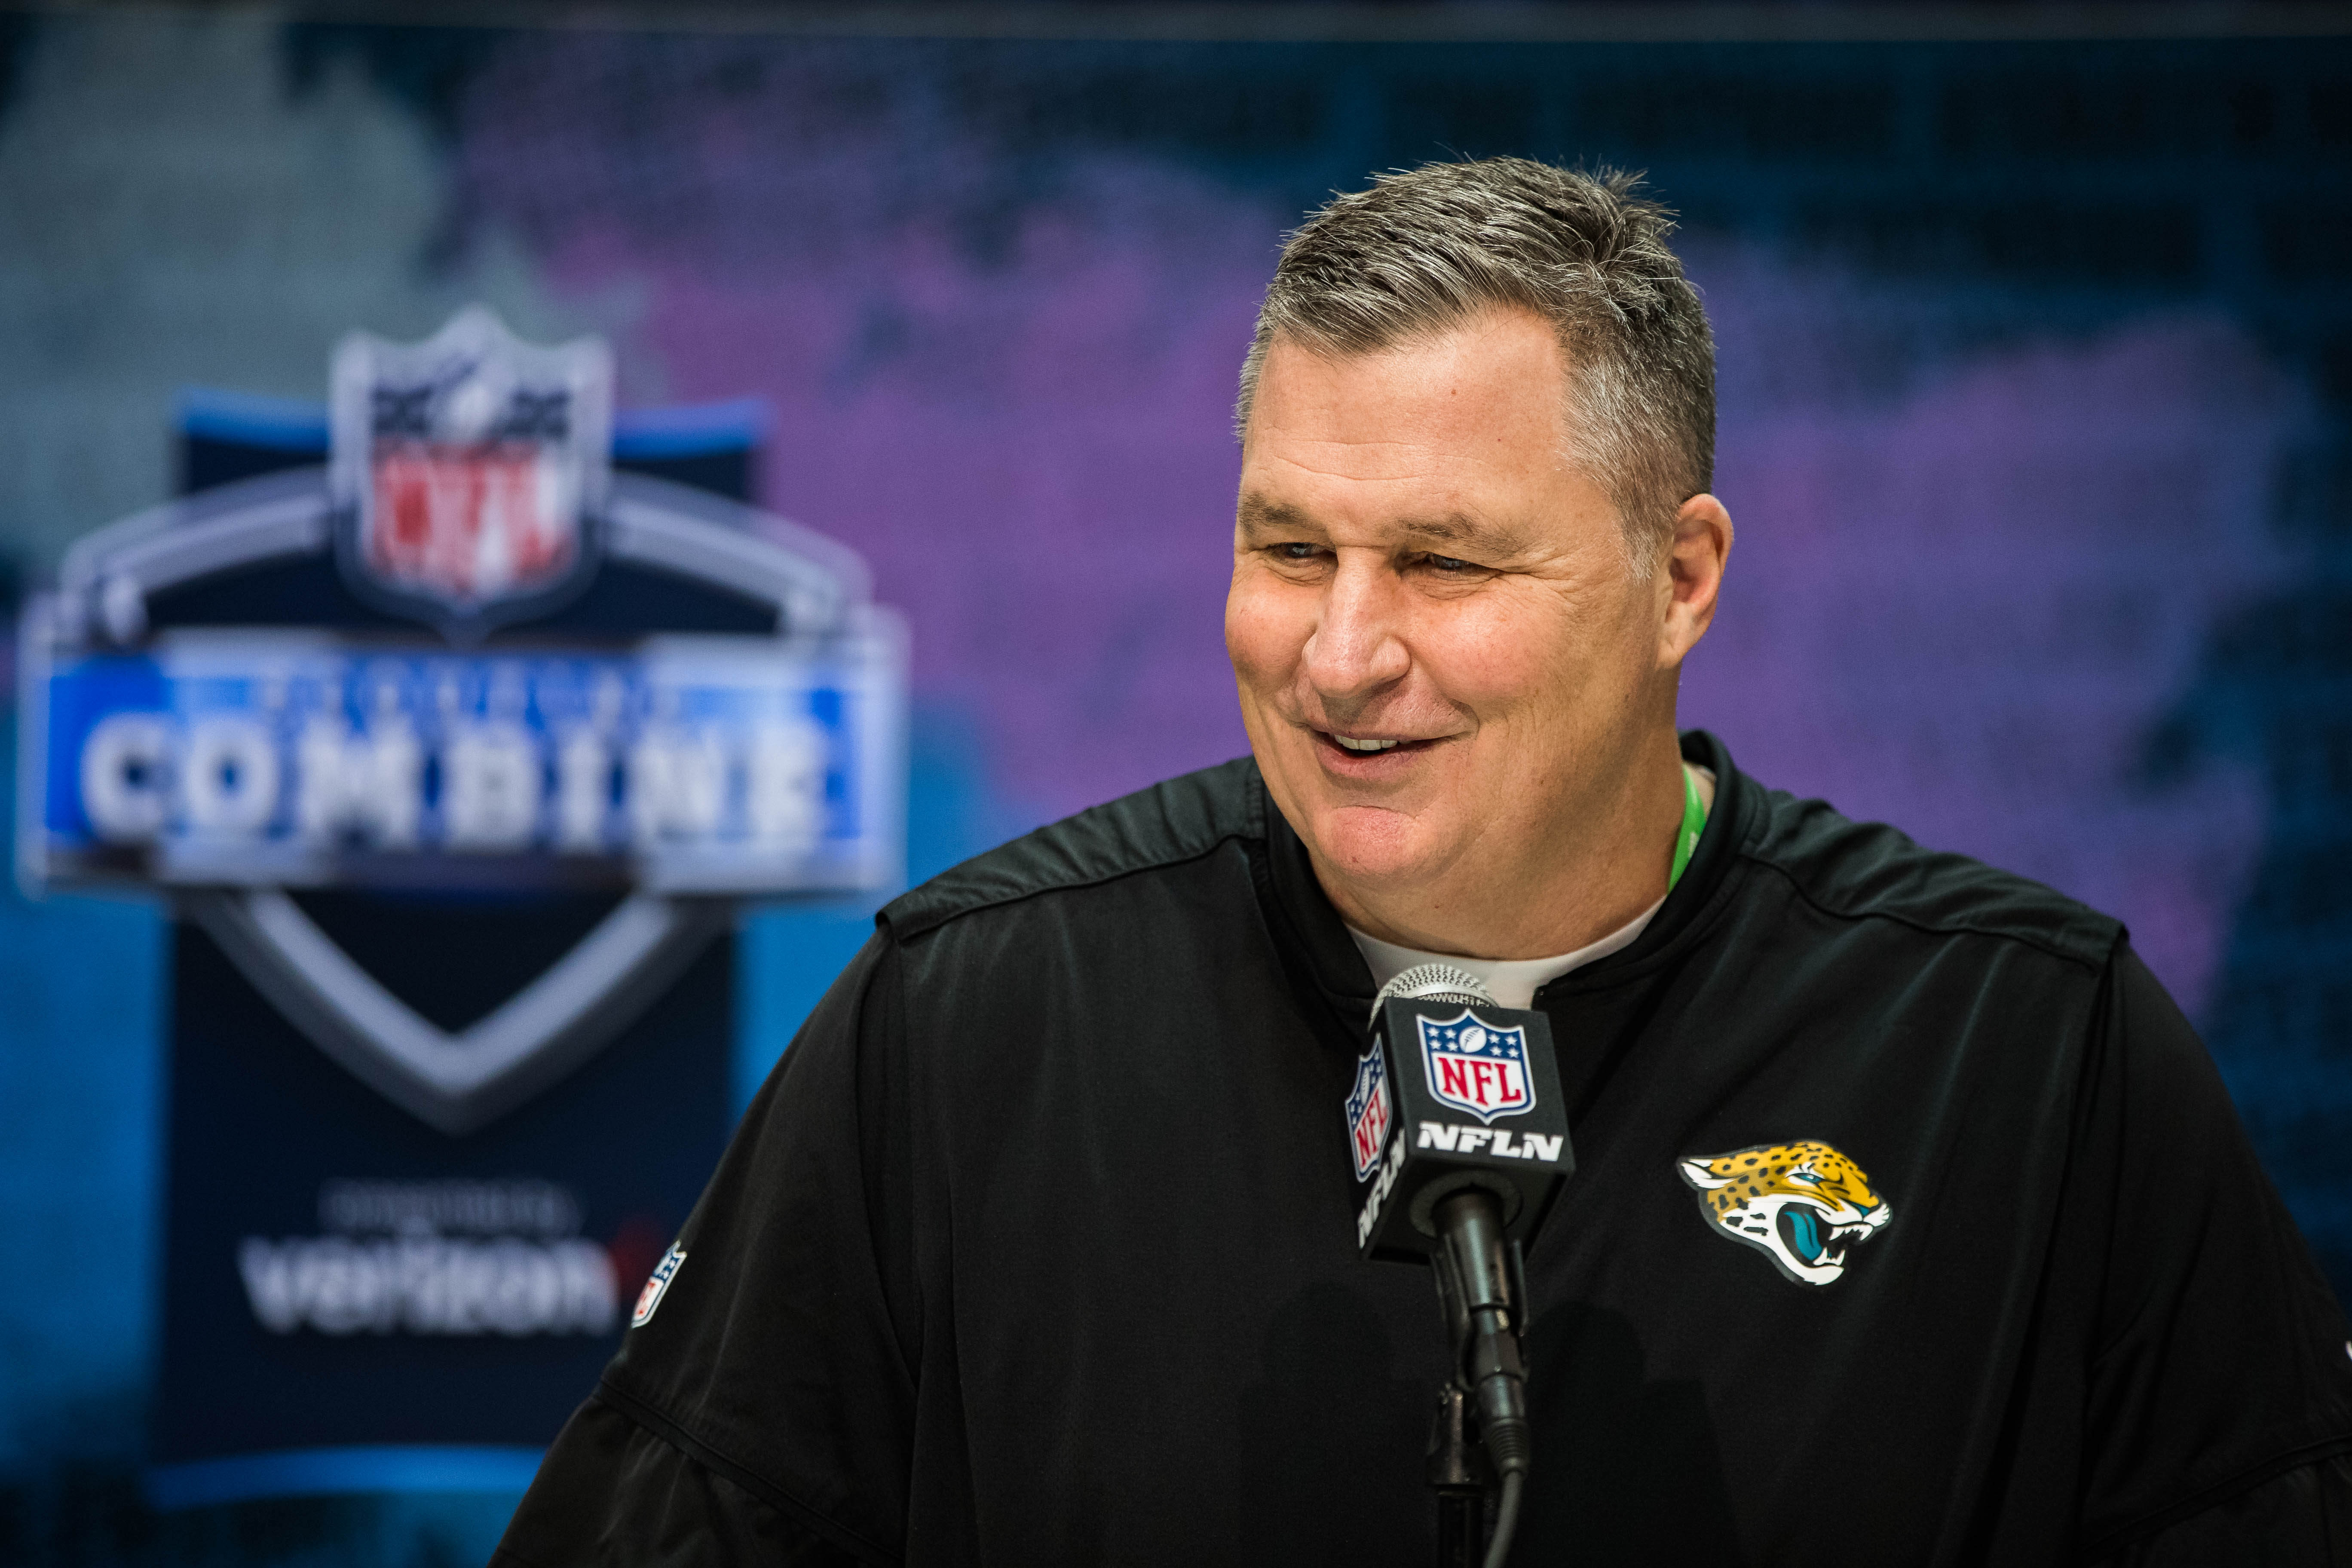 Jaguars HC Doug Marrone on New Offensive Assistants Jay Gruden and Ben McAdoo: 'Those Guys Have Fit in Great'